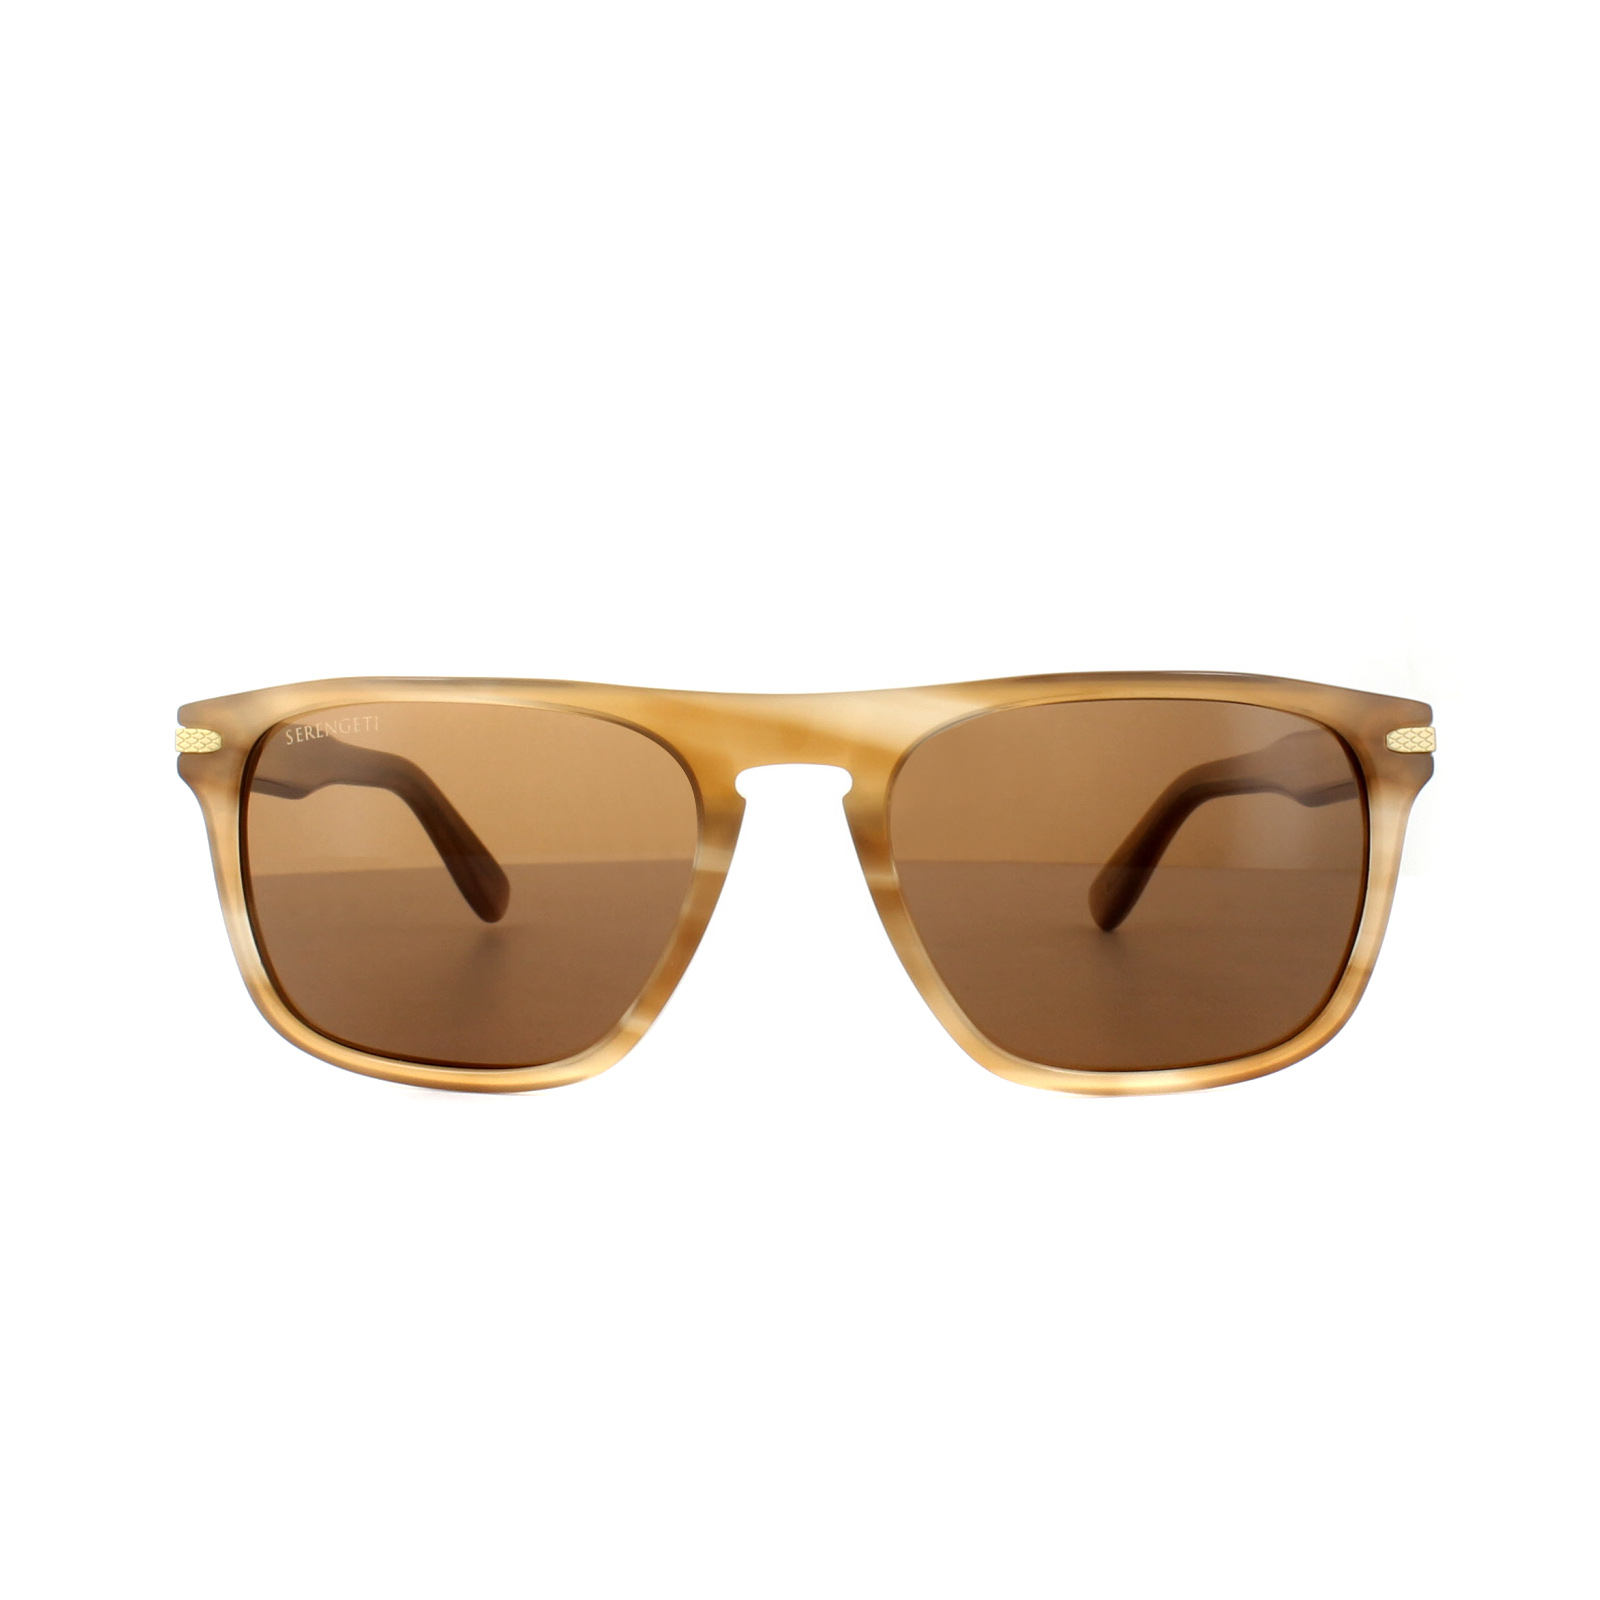 34d0ec2320 Sentinel Serengeti Sunglasses Enrico 8152 Crystal Wood Drivers Brown  Polarized